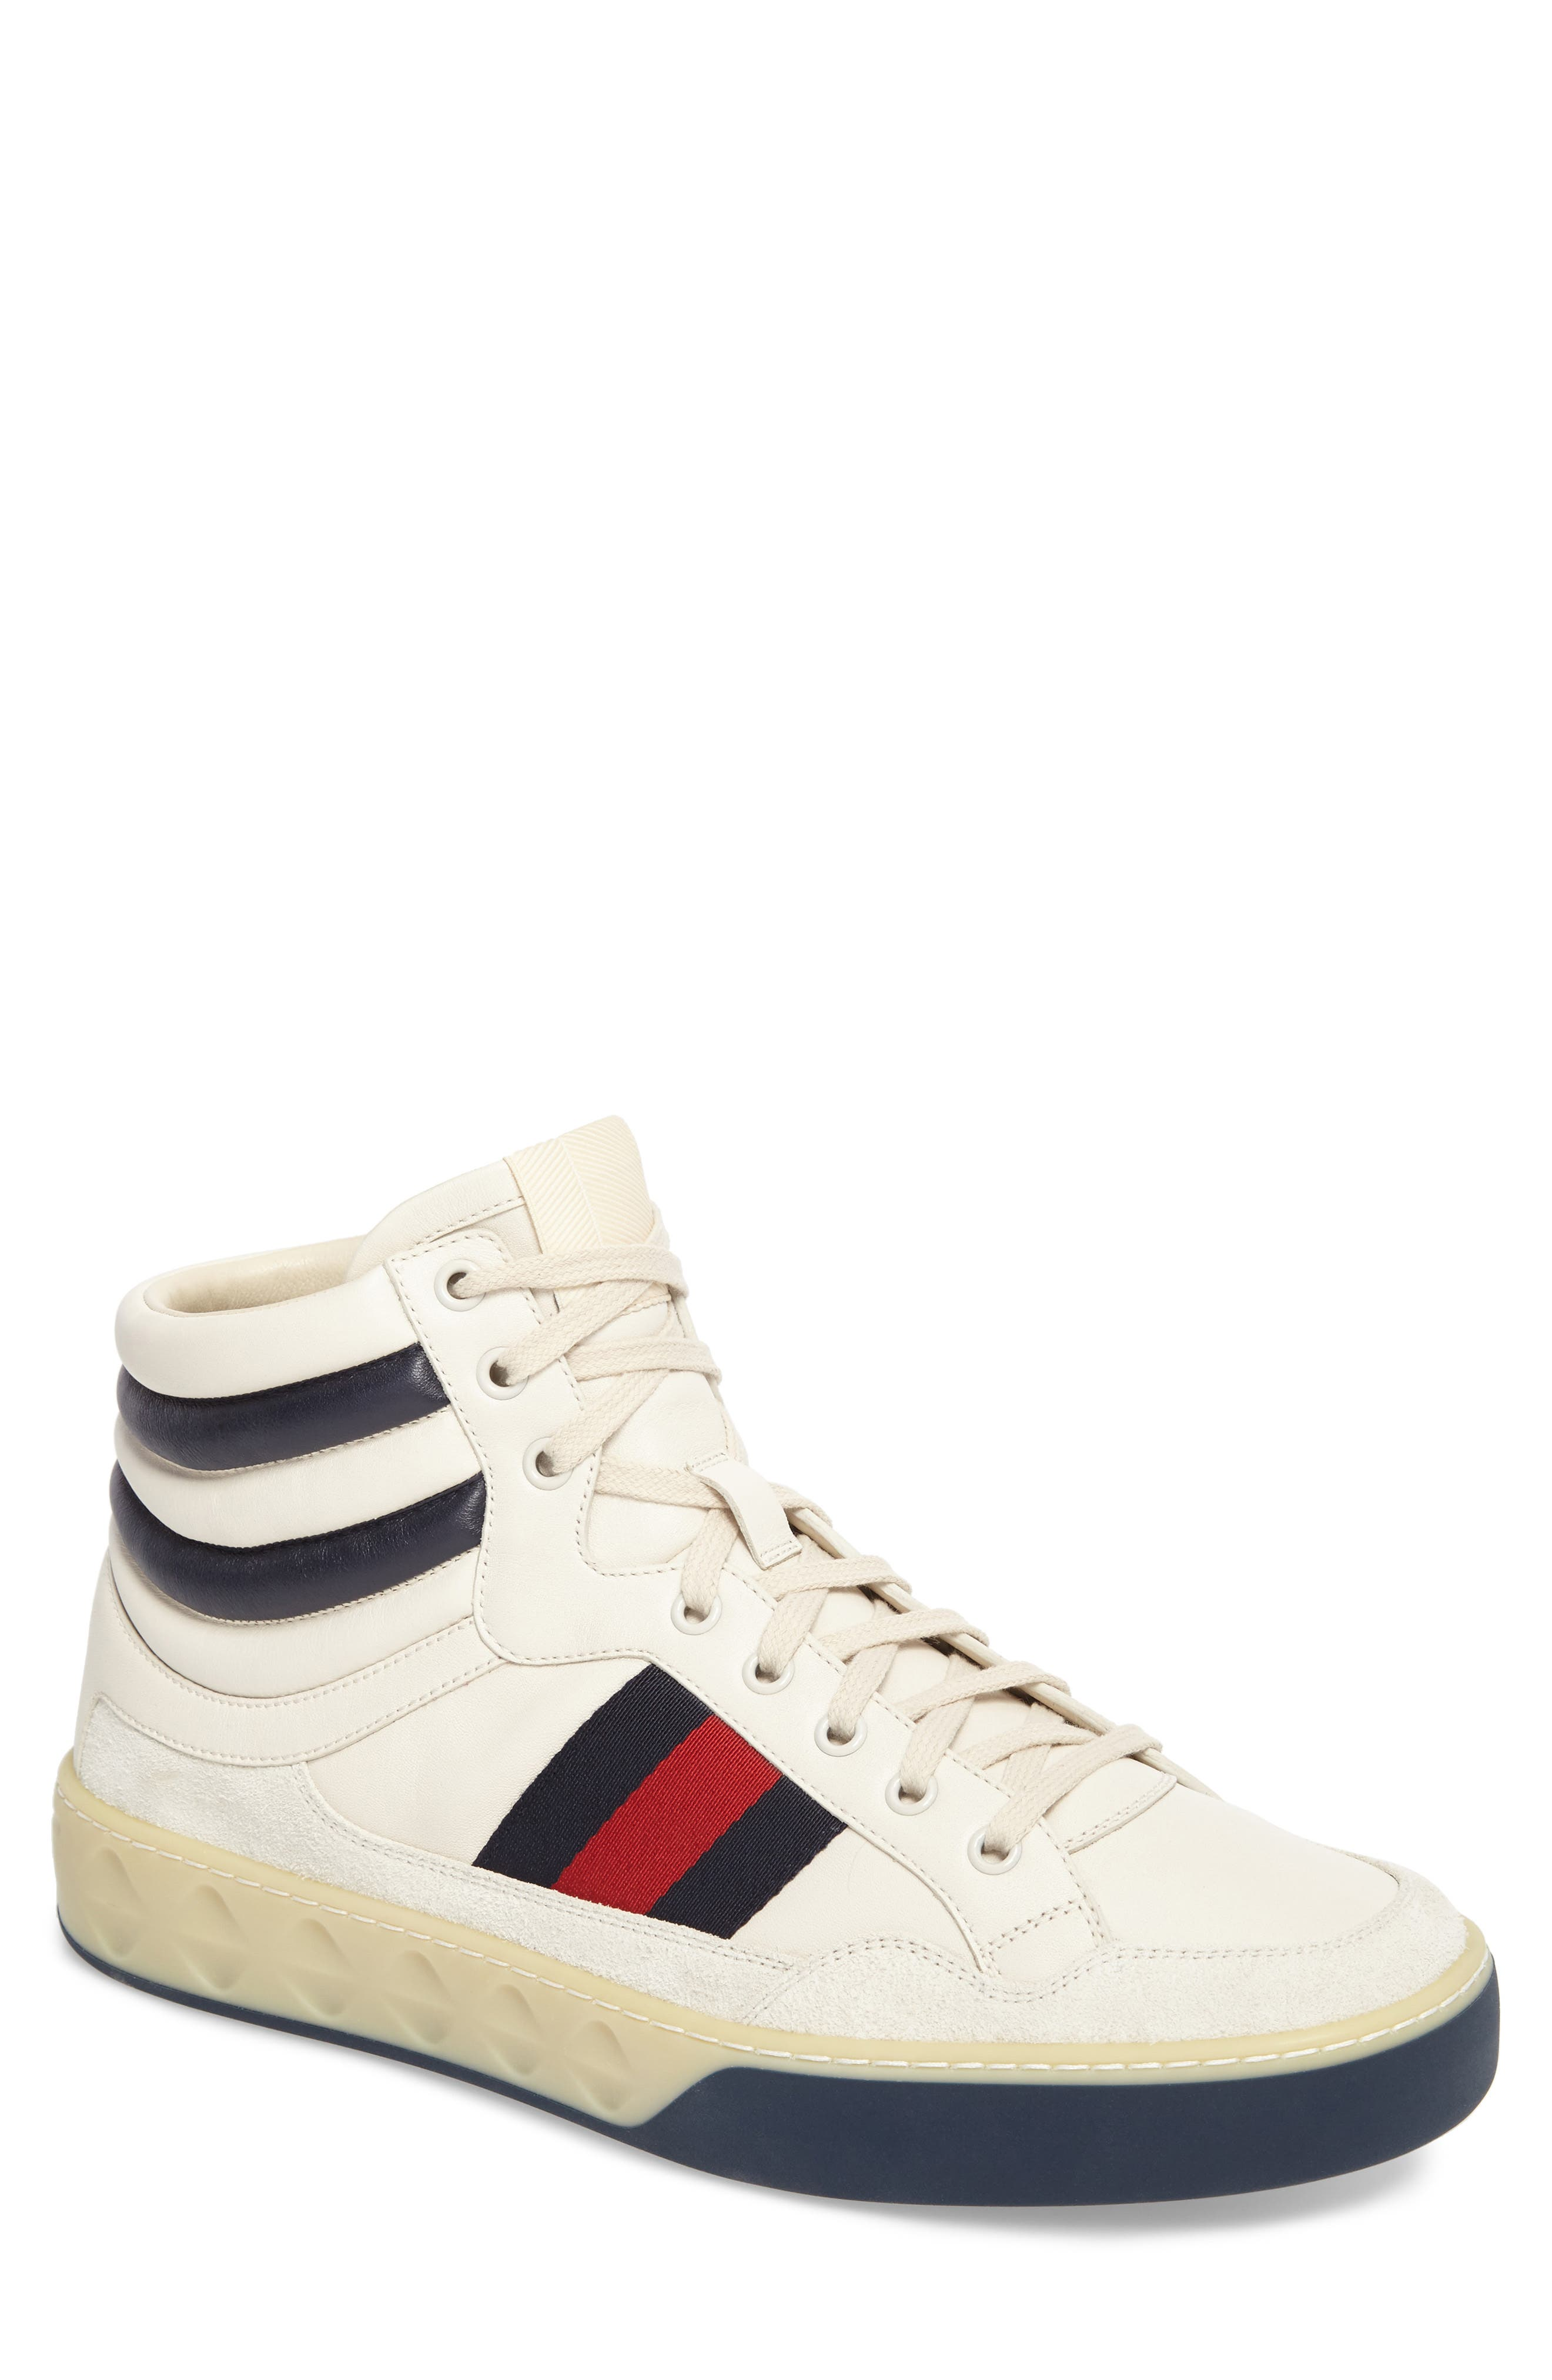 Leather High Top Sneaker,                             Main thumbnail 1, color,                             WHITE LEATHER/ SUEDE